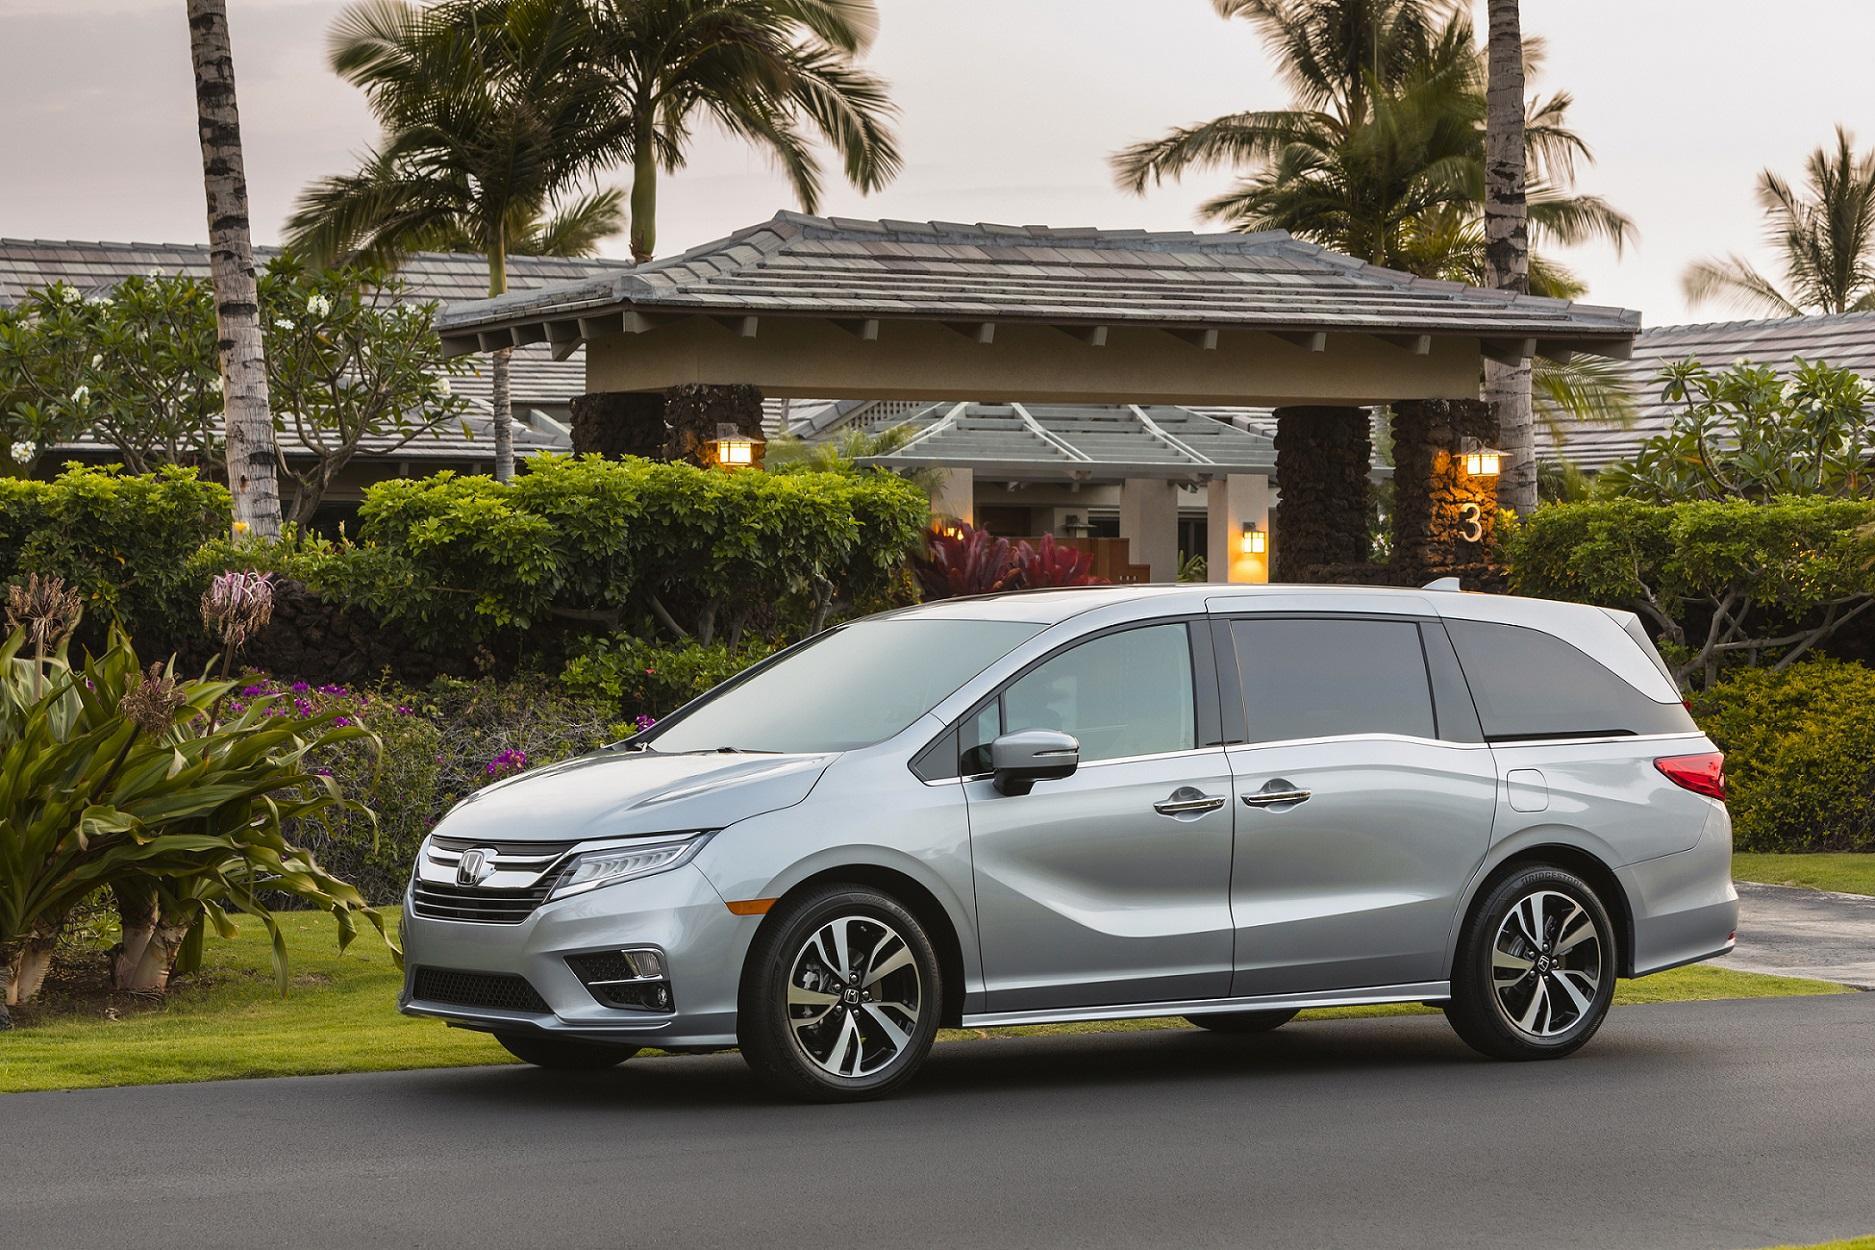 All new Odyssey minivans to get 10-speed automatic transmission as the model turns 25